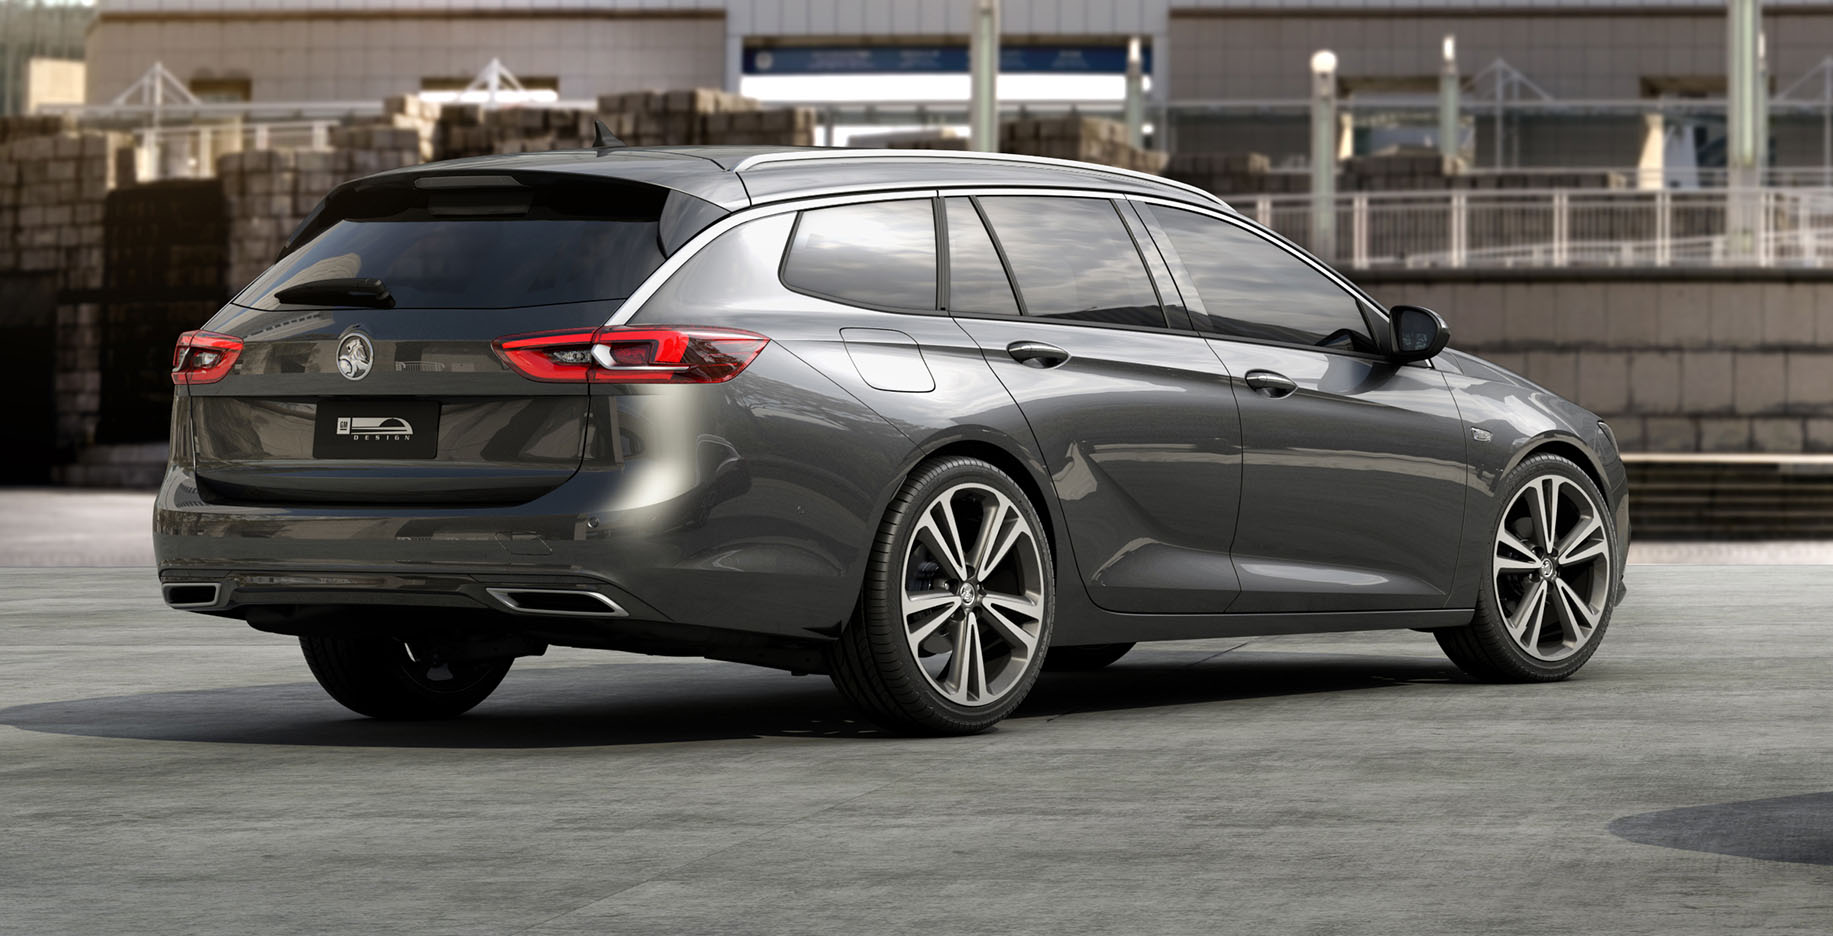 Holden confirms 2018 Commodore 0-100km/h target, new ...